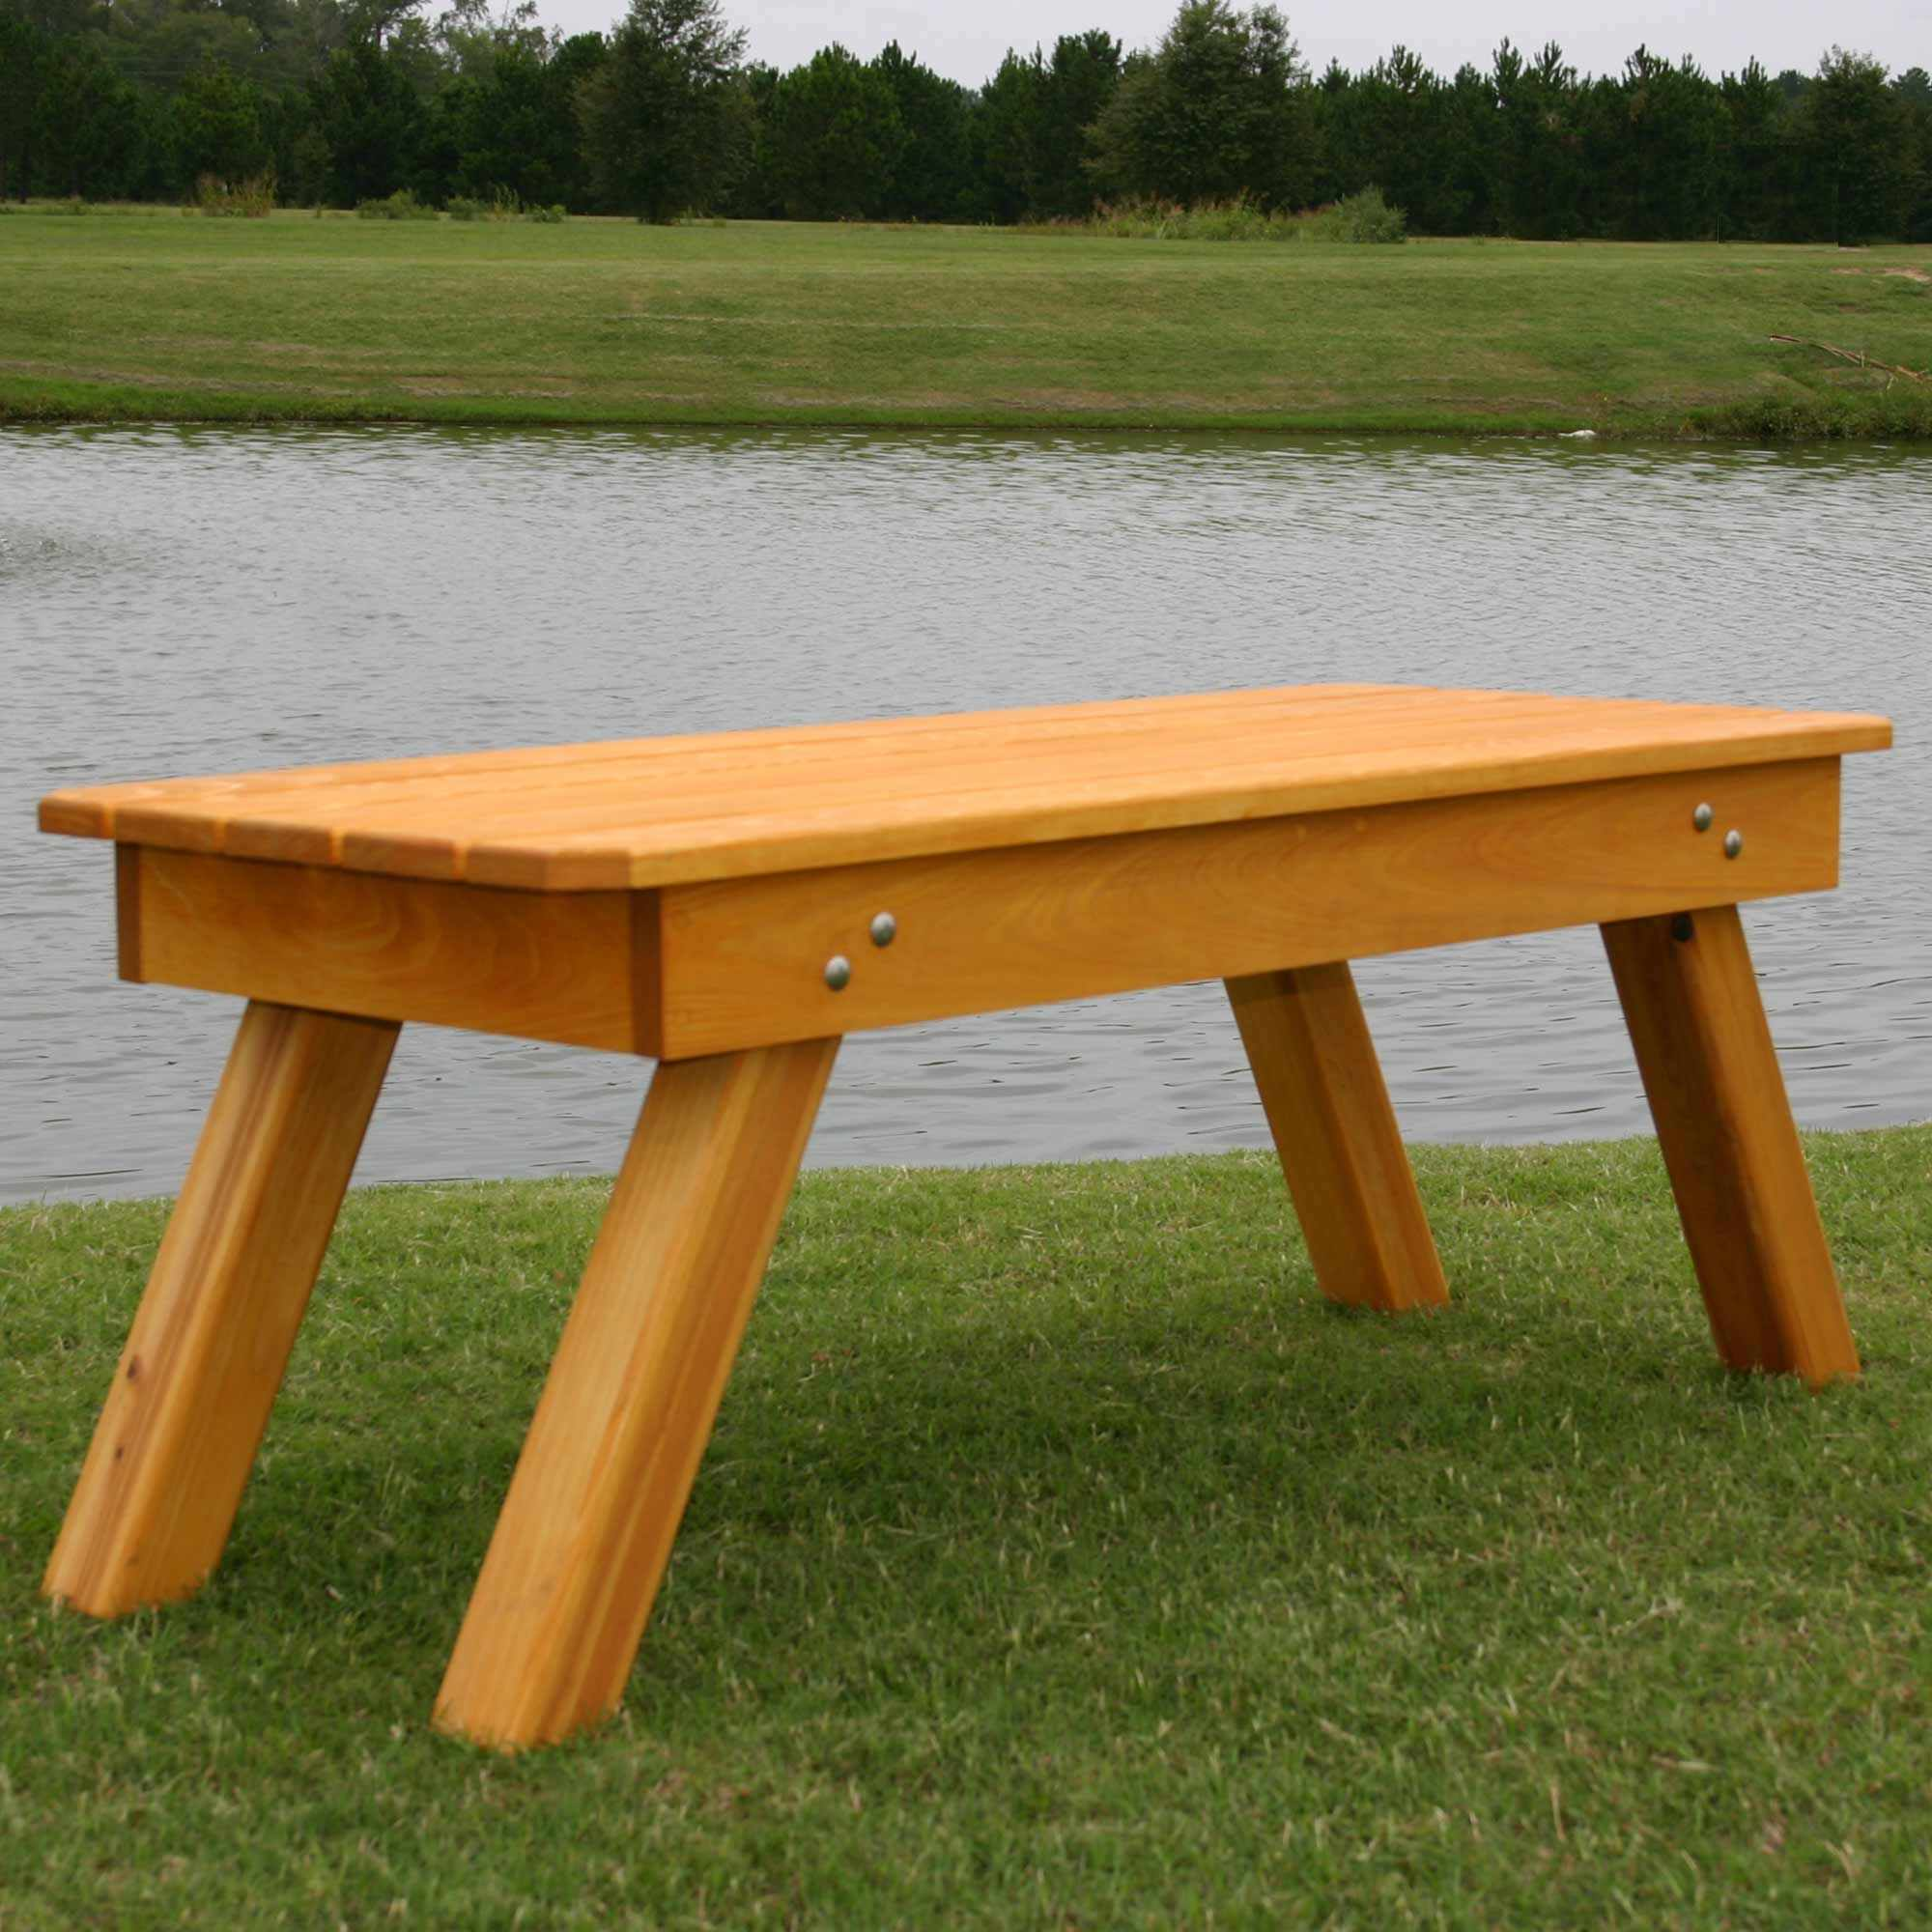 adirondack coffee table act k designed for outdoors dfohome. Black Bedroom Furniture Sets. Home Design Ideas